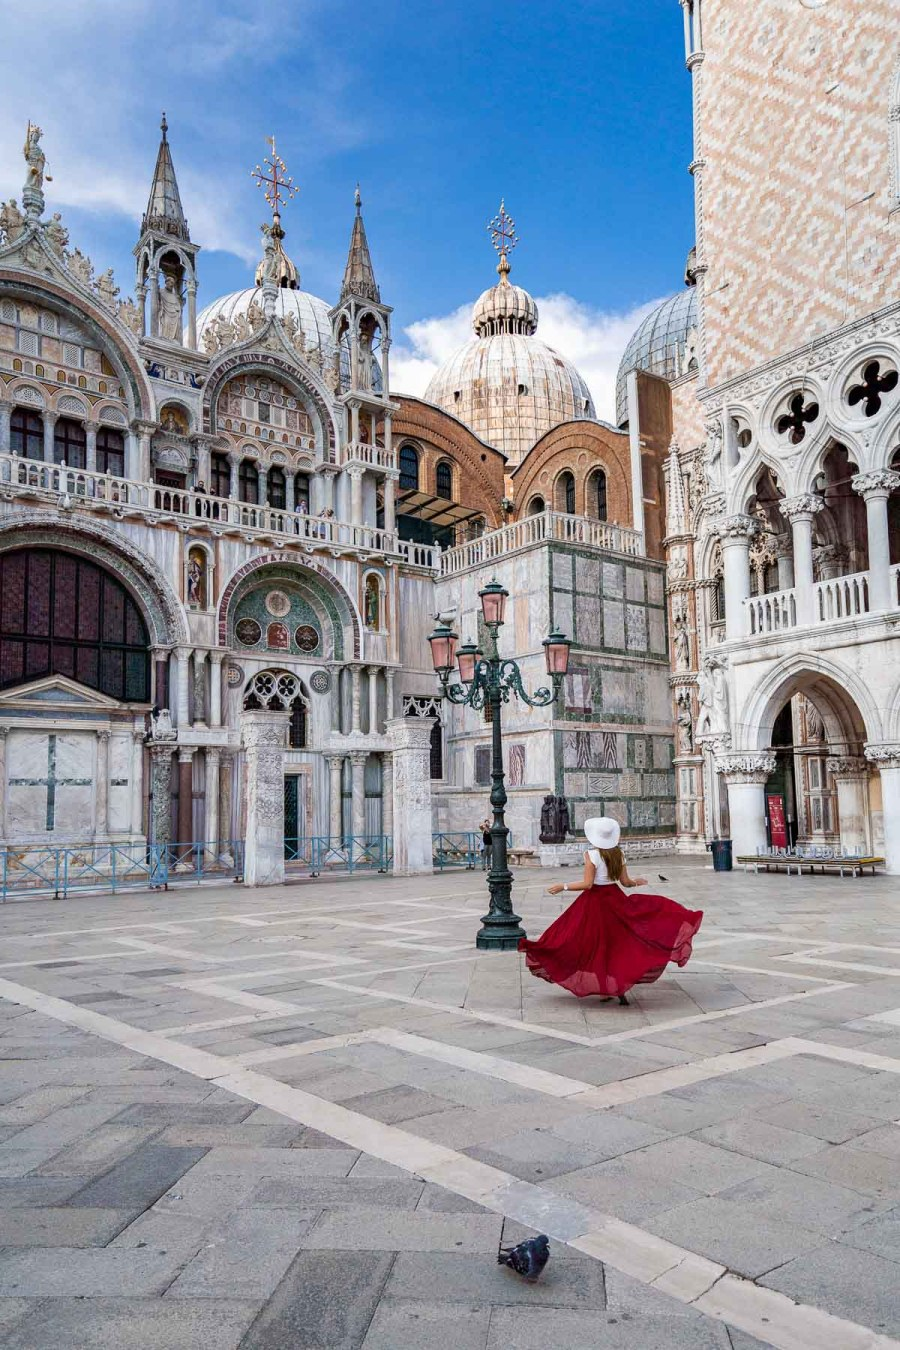 Girl in a red skirt twirling in St. Mark's Square in Venice, Italy